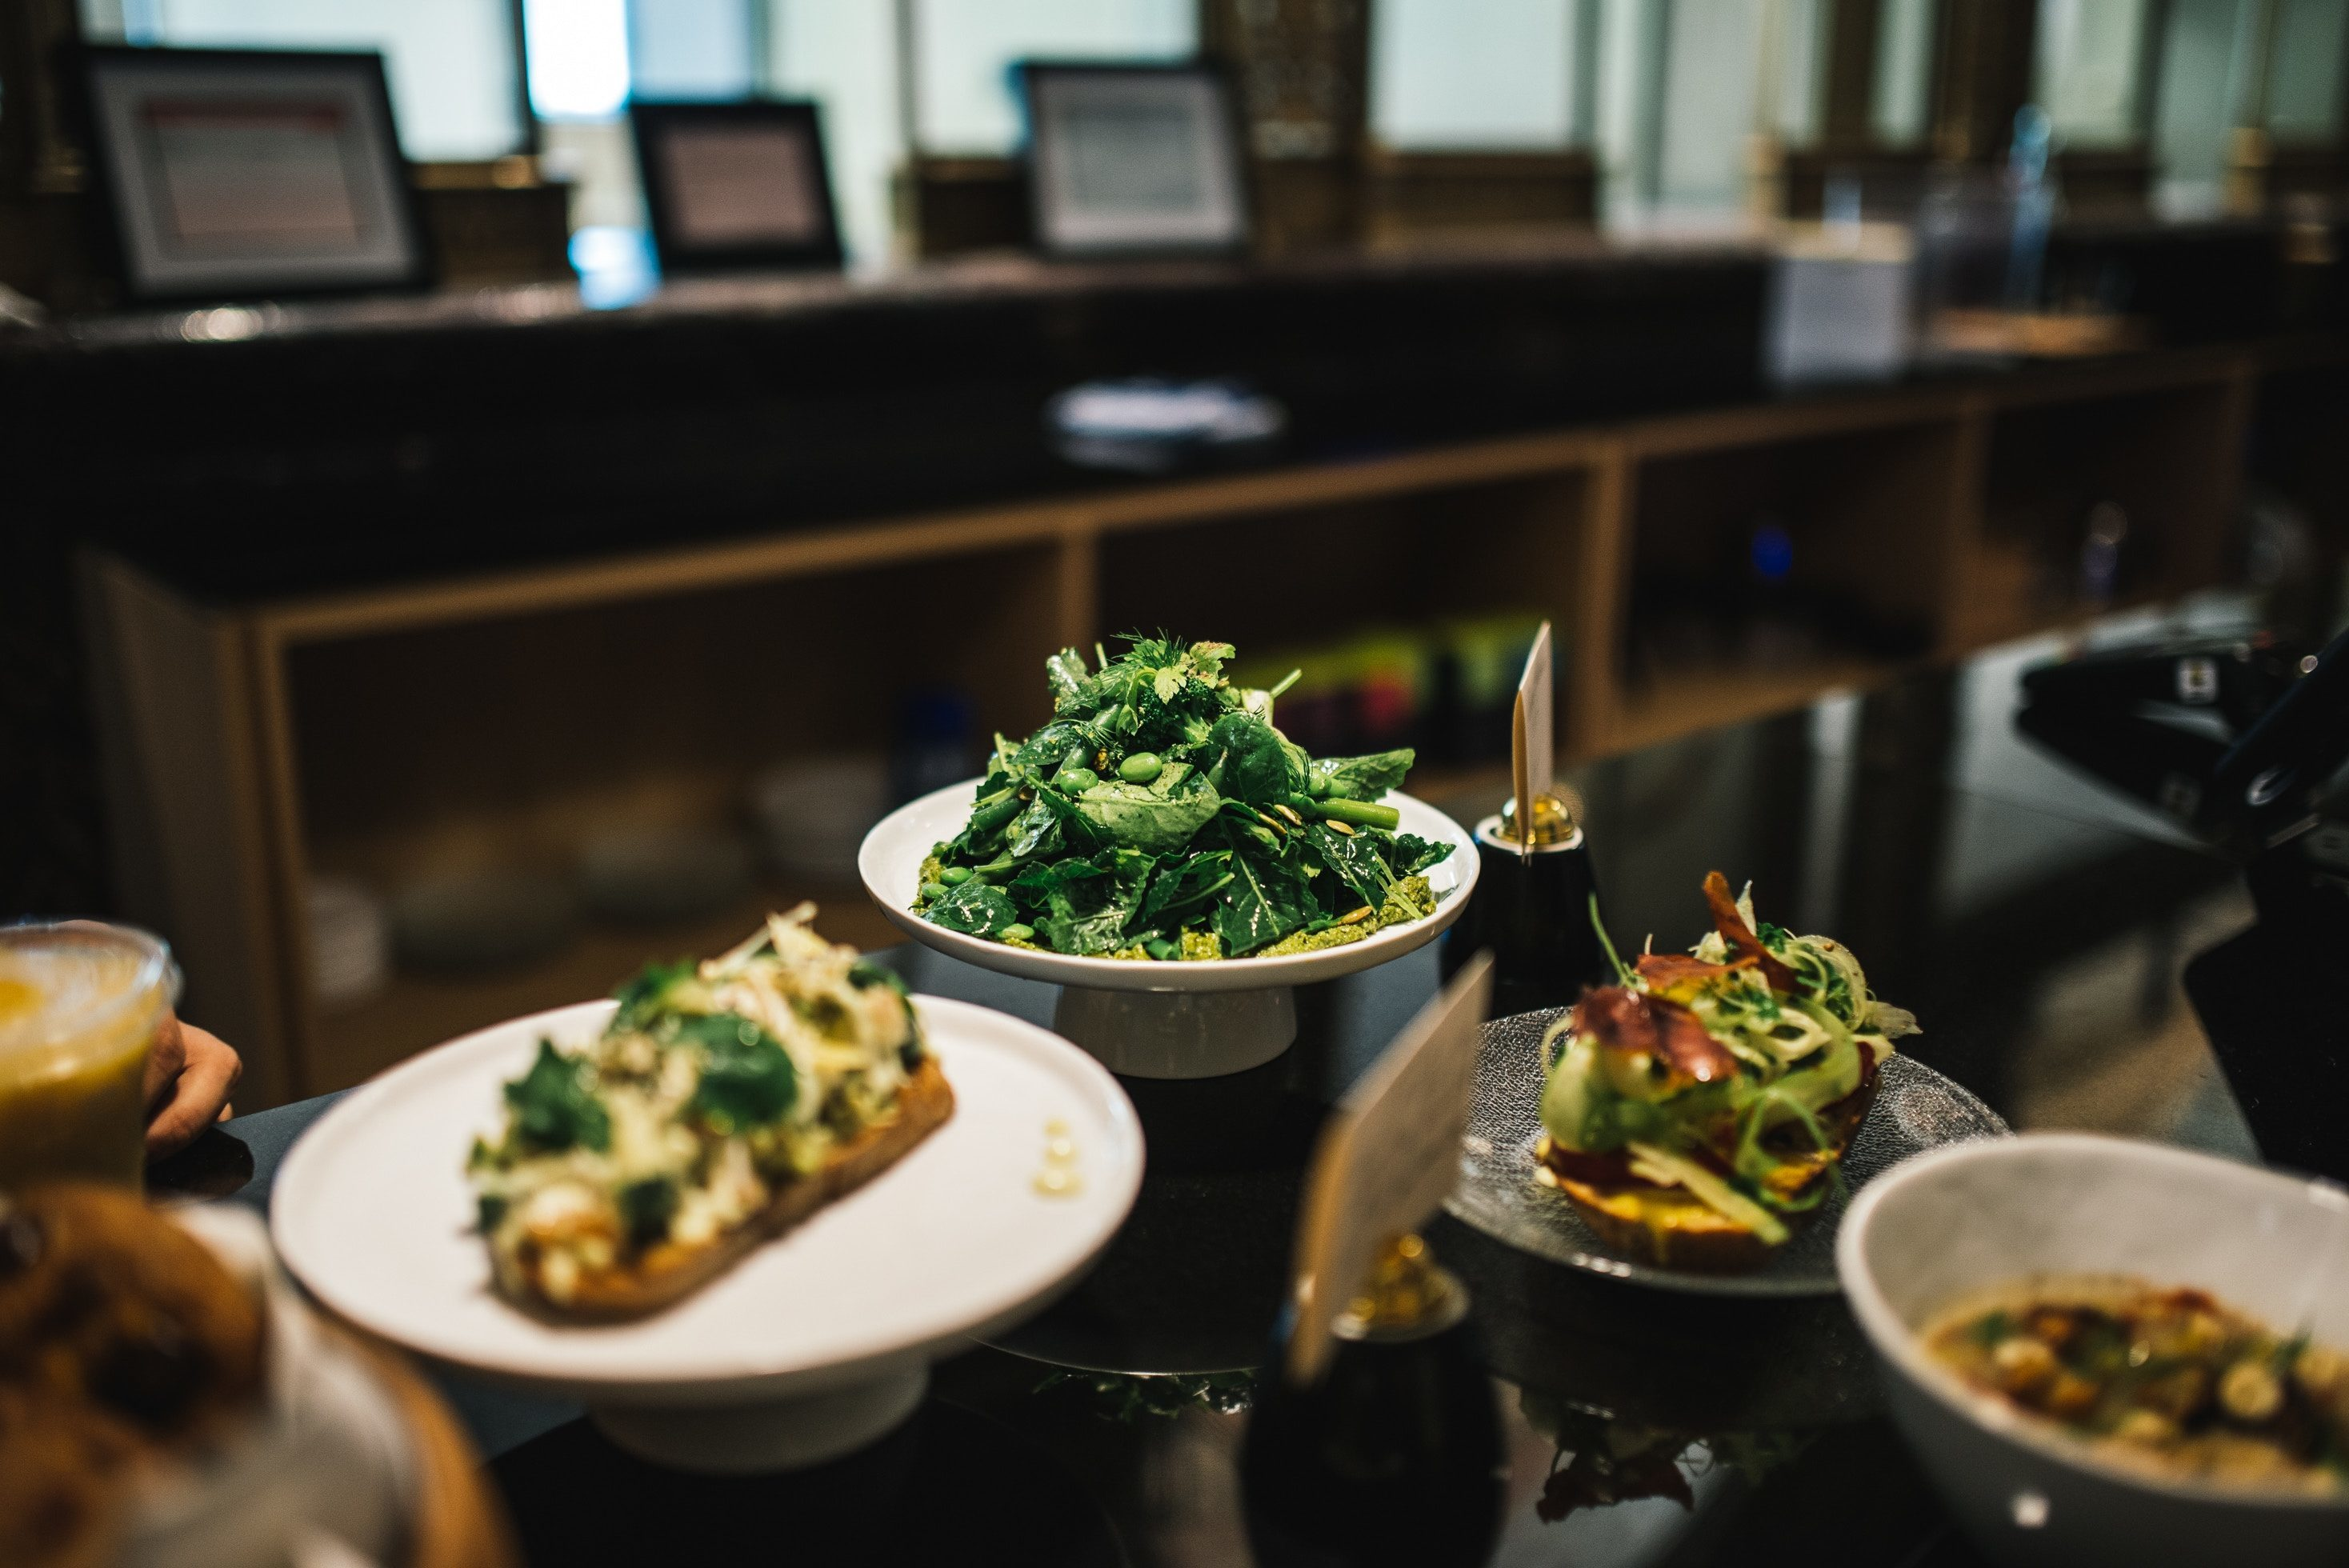 With A Focus On Healthy, High Quality Menus, Fast Casual Franchised Restaurants Sprint In A New Direction